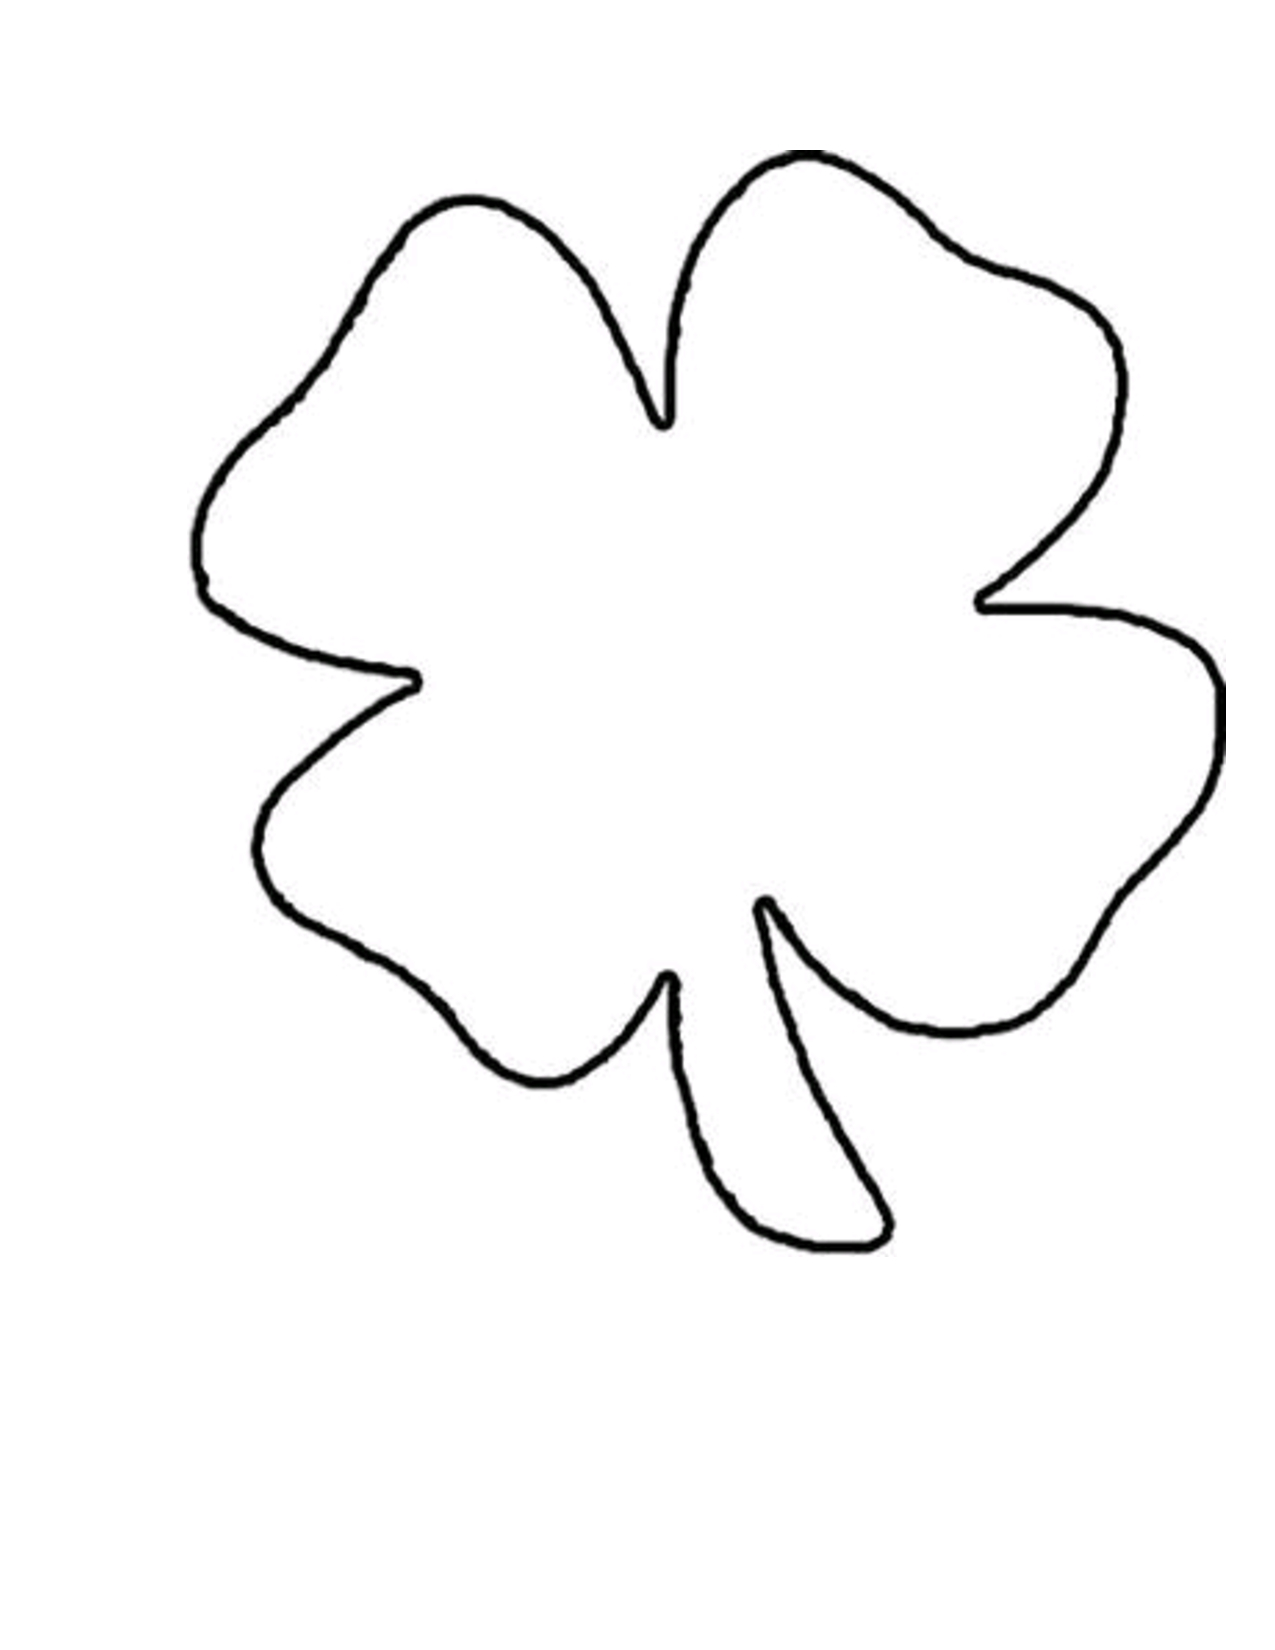 Four Leaf Clover Template Printable Free